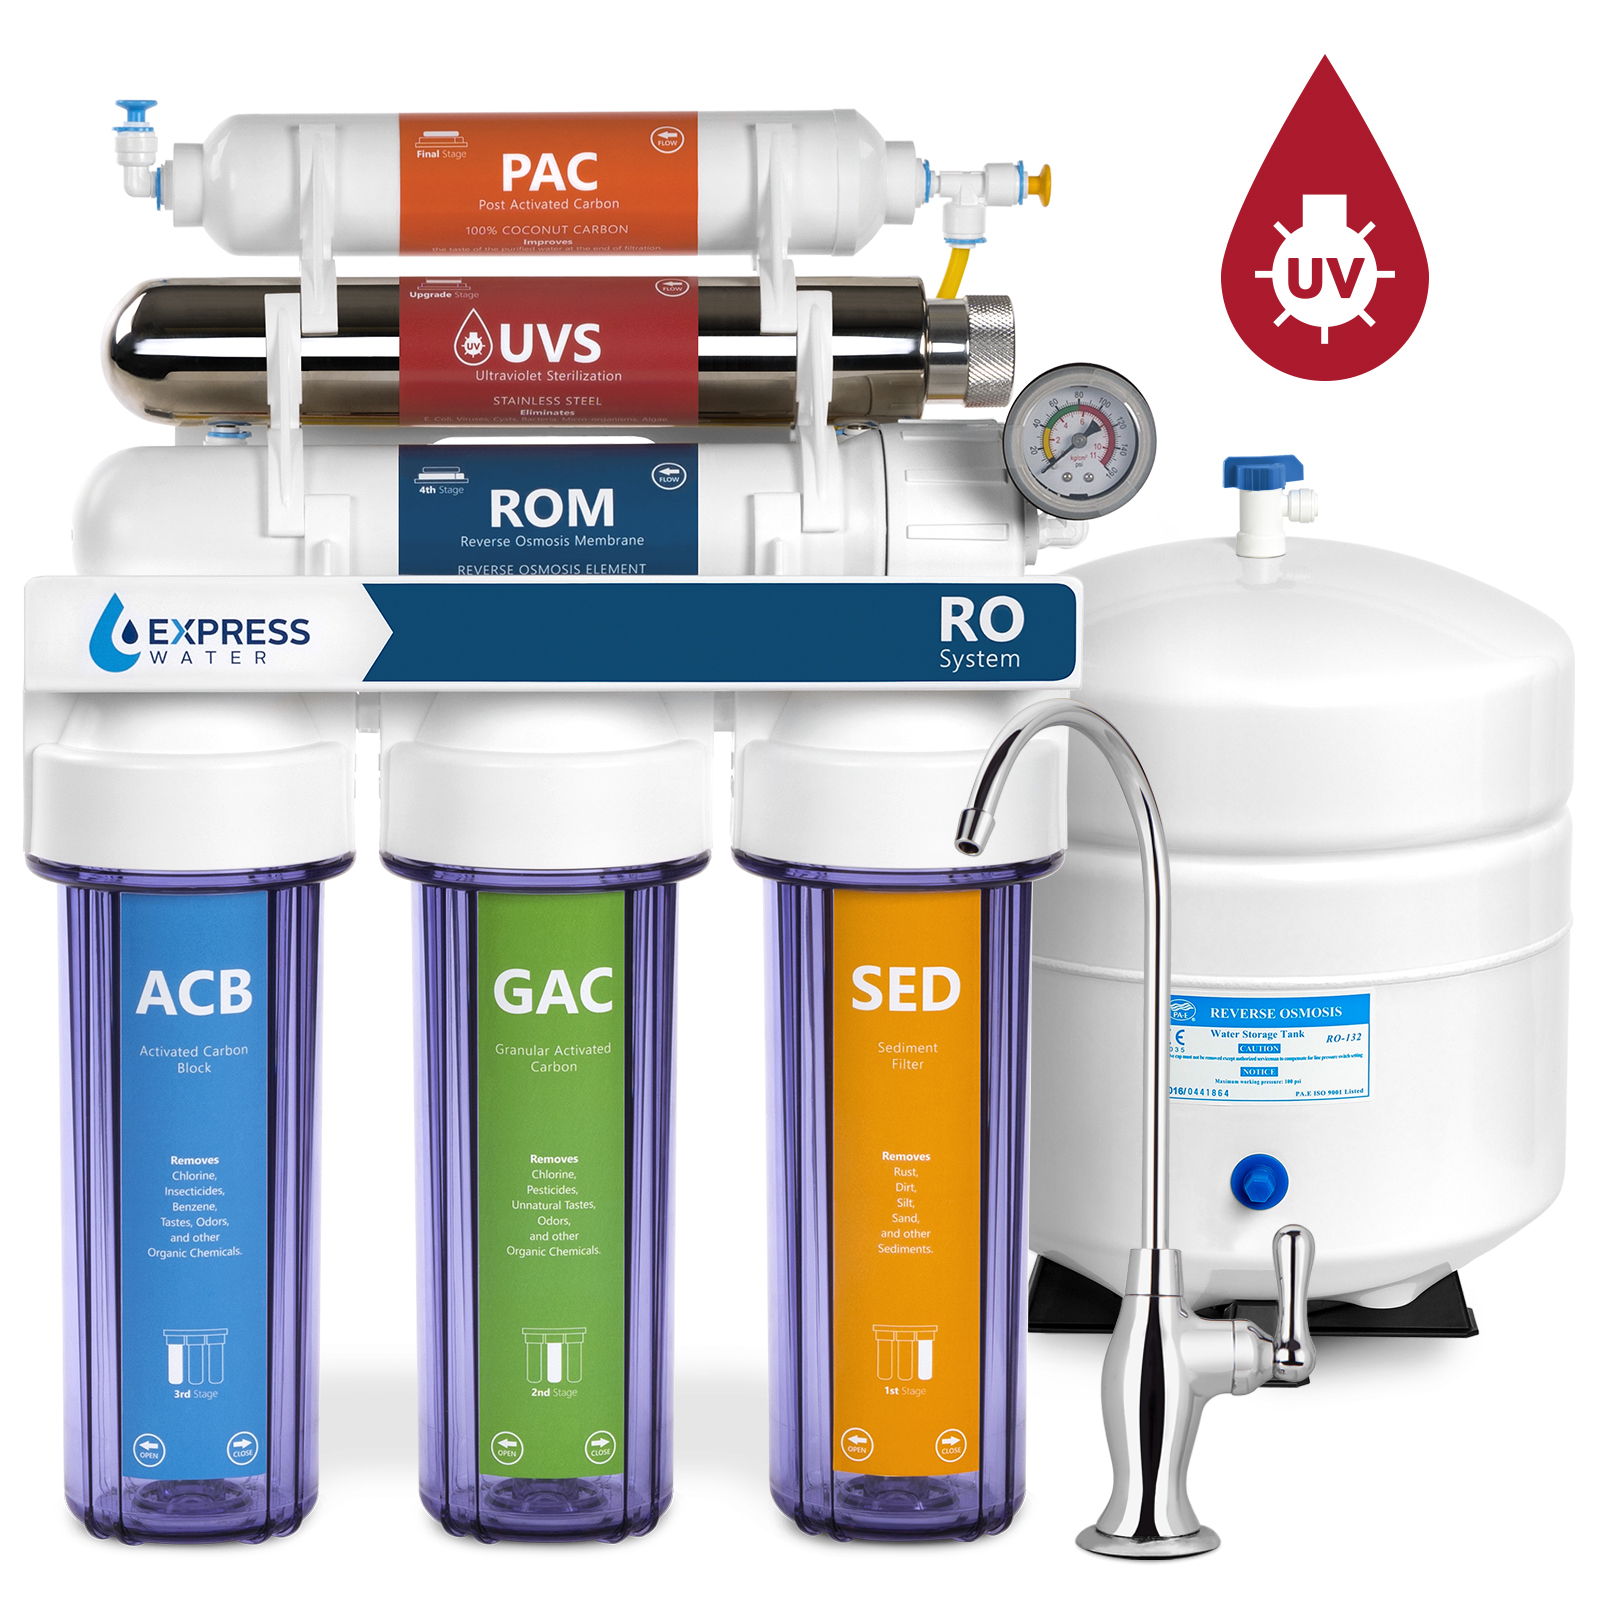 express water ultraviolet reverse osmosis water filtration system 6 stage ro uv water sterilizer with faucet and tank uv under sink water filter